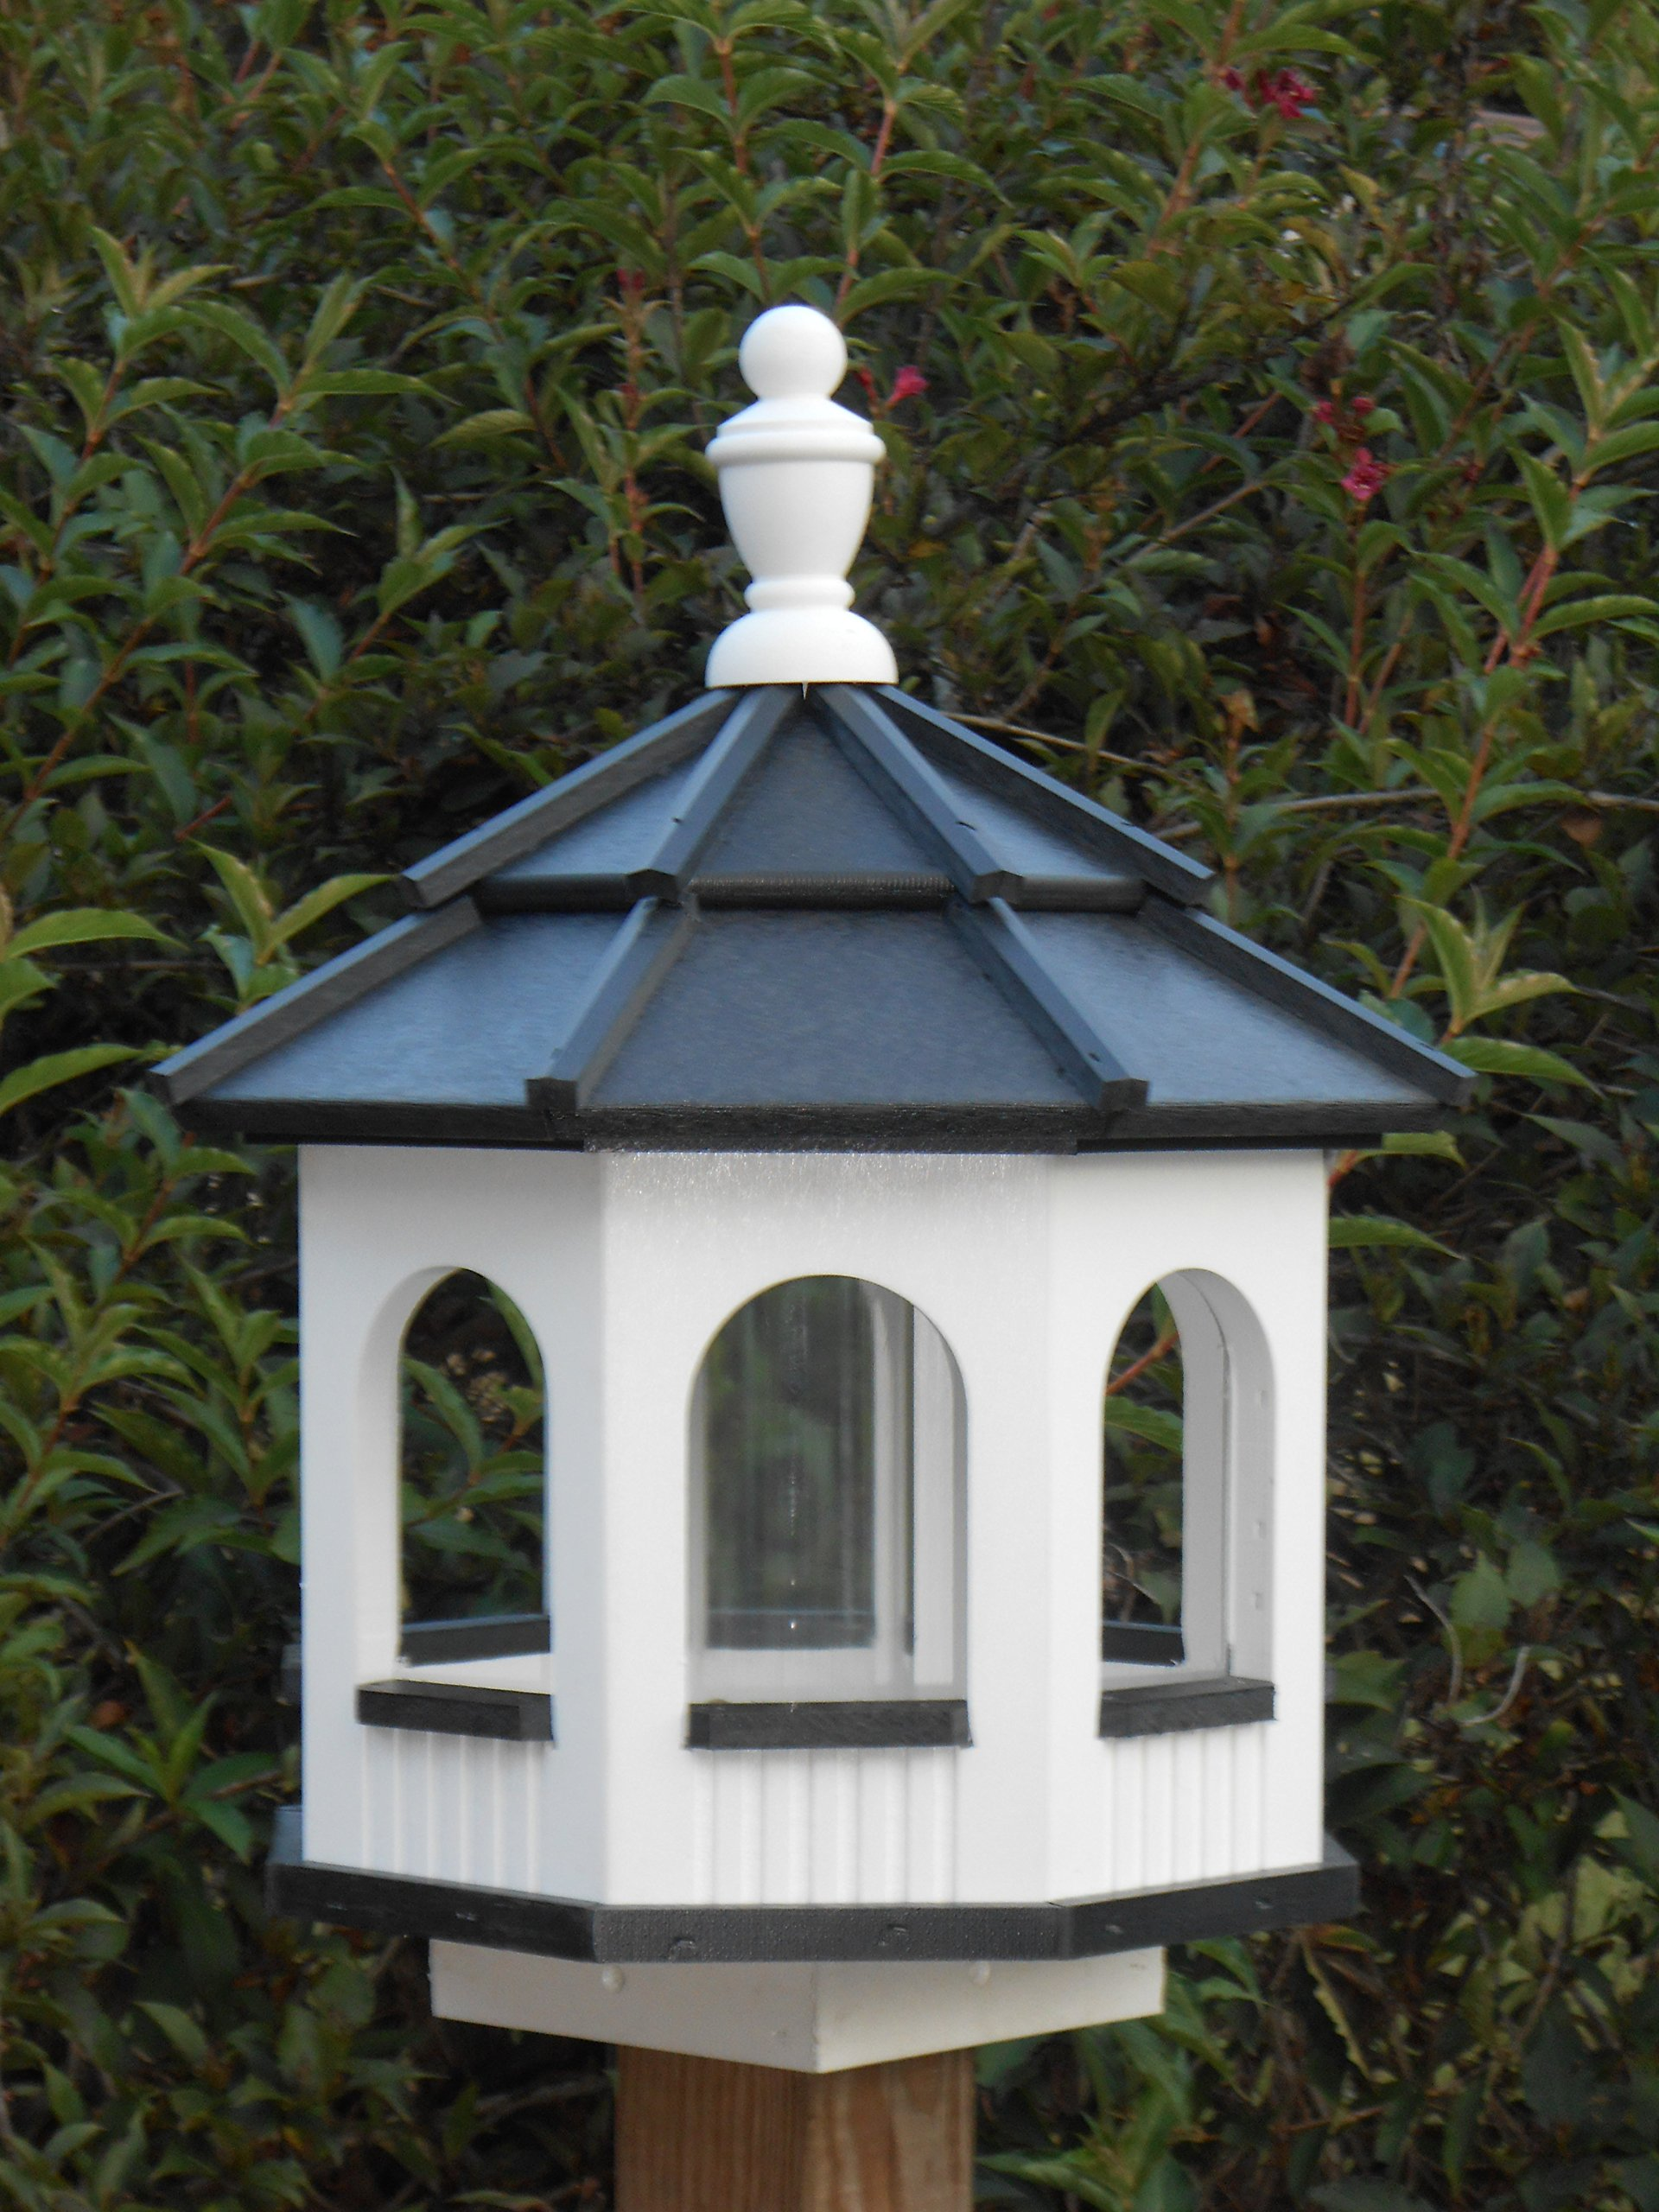 Vinyl Gazebo Bird Feeder Amish Homemade Handmade Handcrafted White & Black Medium